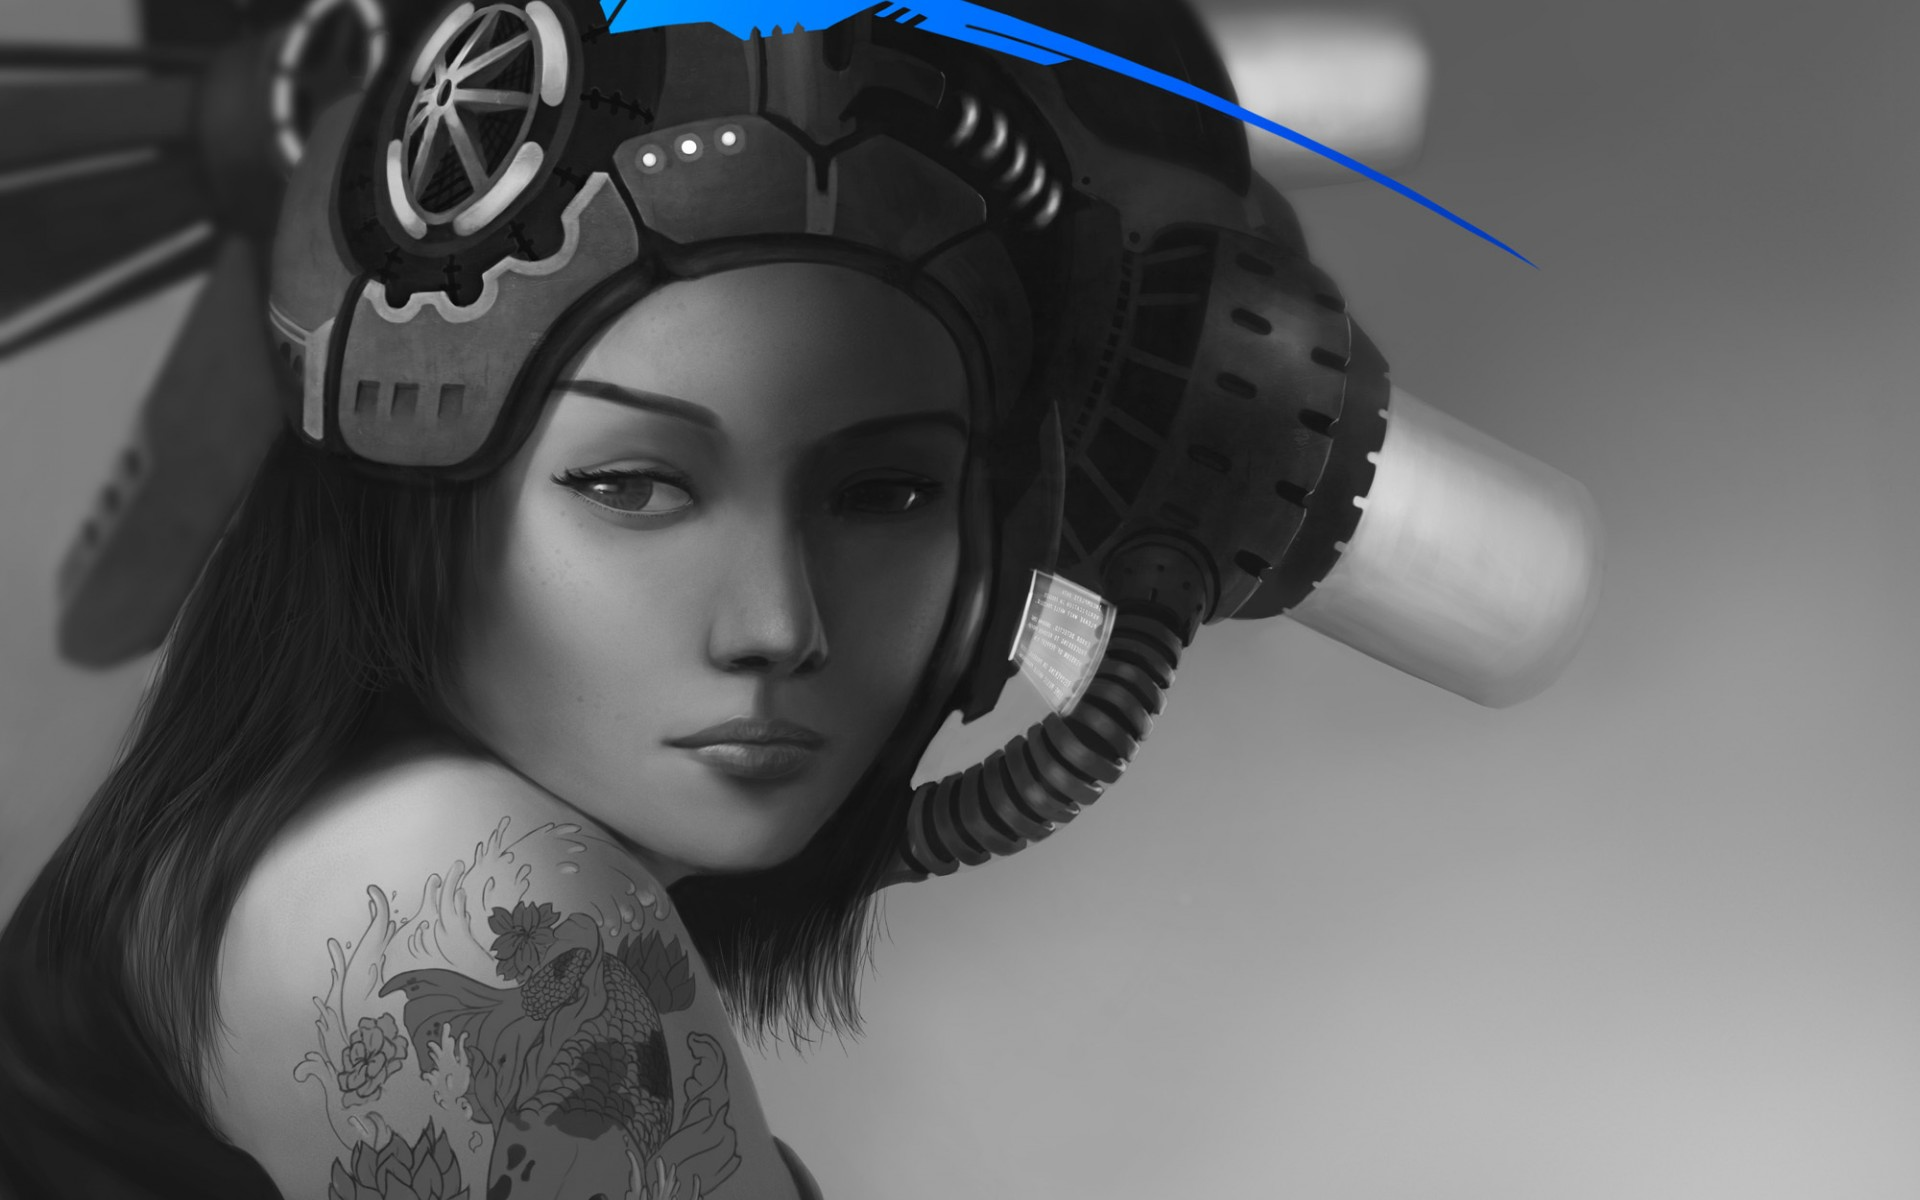 Art Girl Hat Monochrome Black And White Blue Black Girls And Sci Fi 1671289 Hd Wallpaper Backgrounds Download